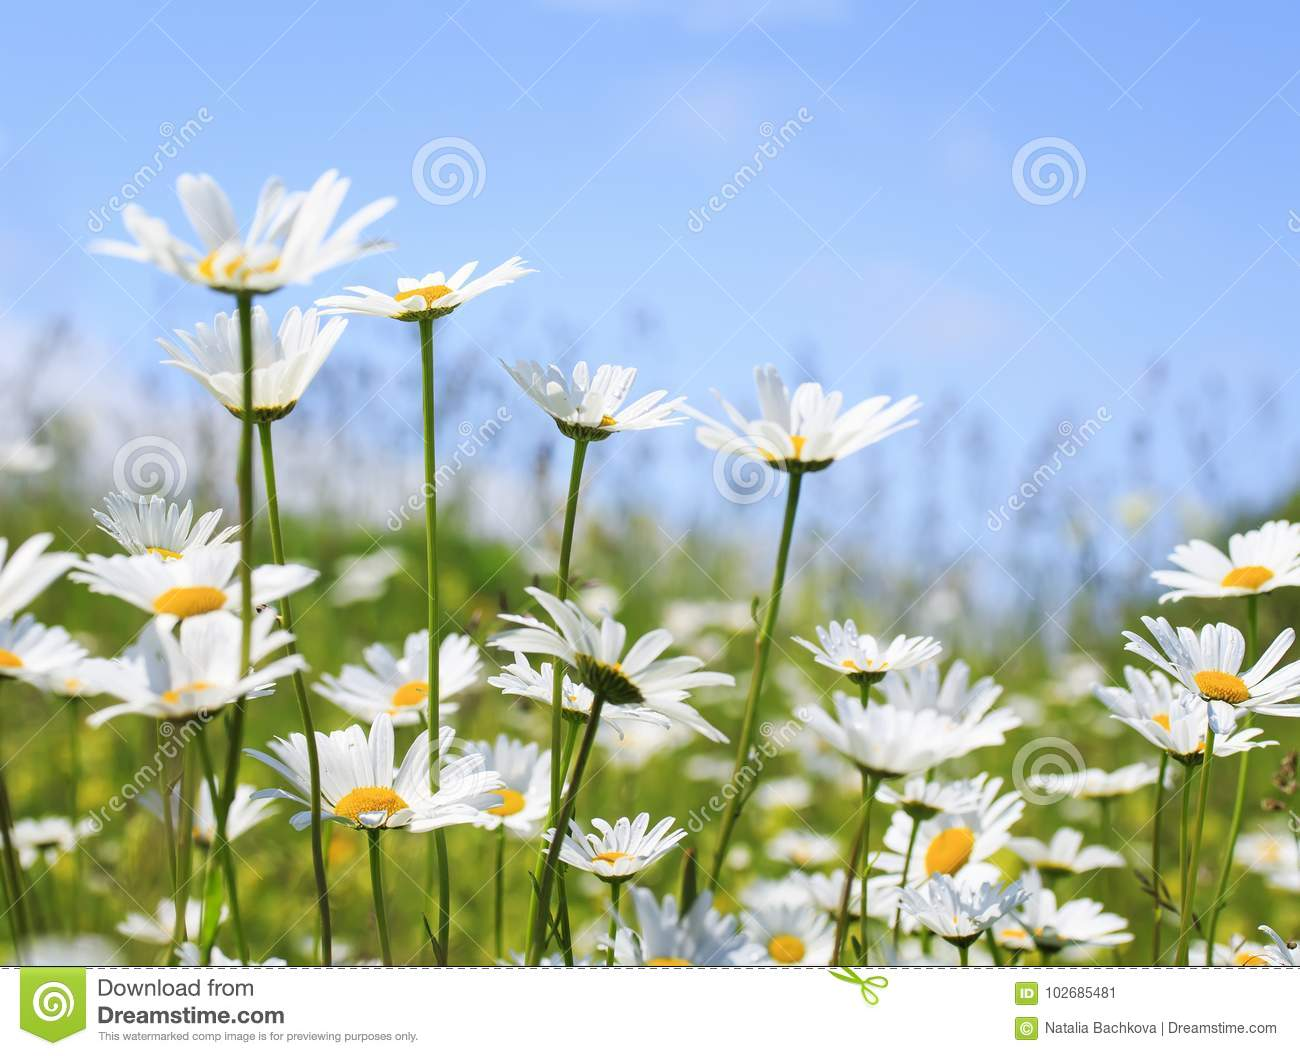 Beautiful summer field with white flowers daisies stock image royalty free stock photo izmirmasajfo